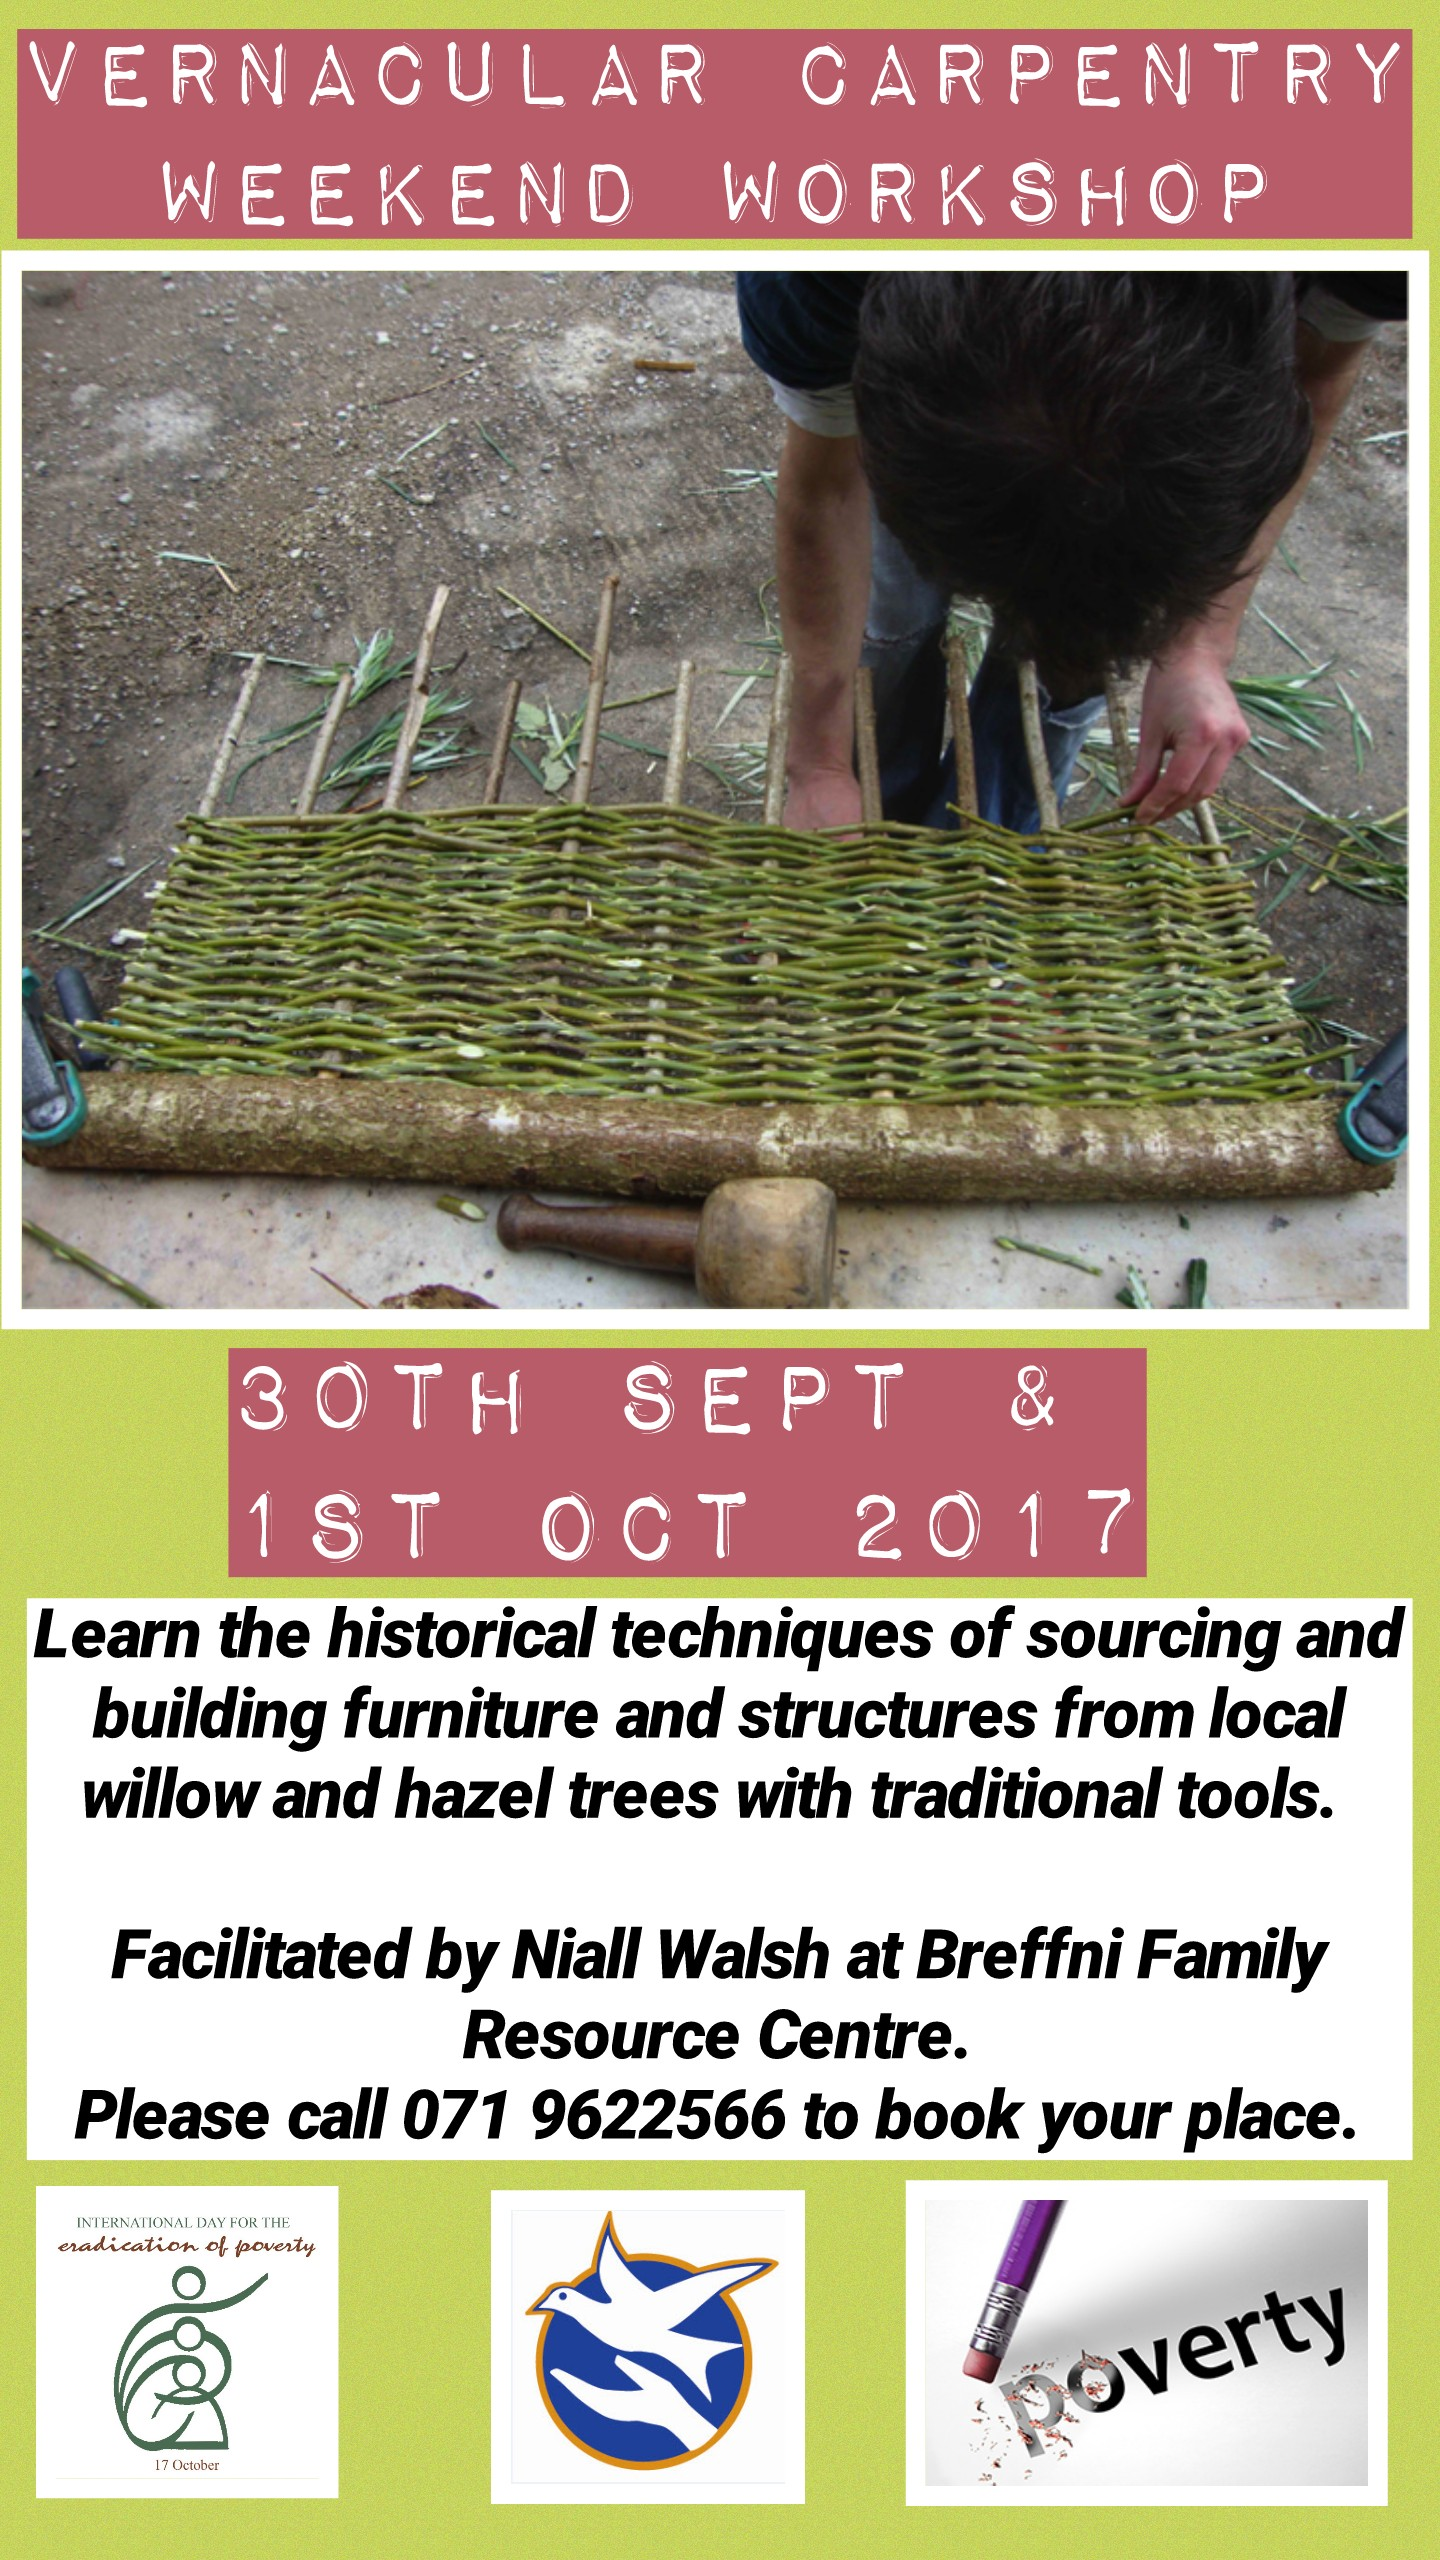 MyCarrick Event - Breffni Family Resource Centre - Vernacular Carpentry